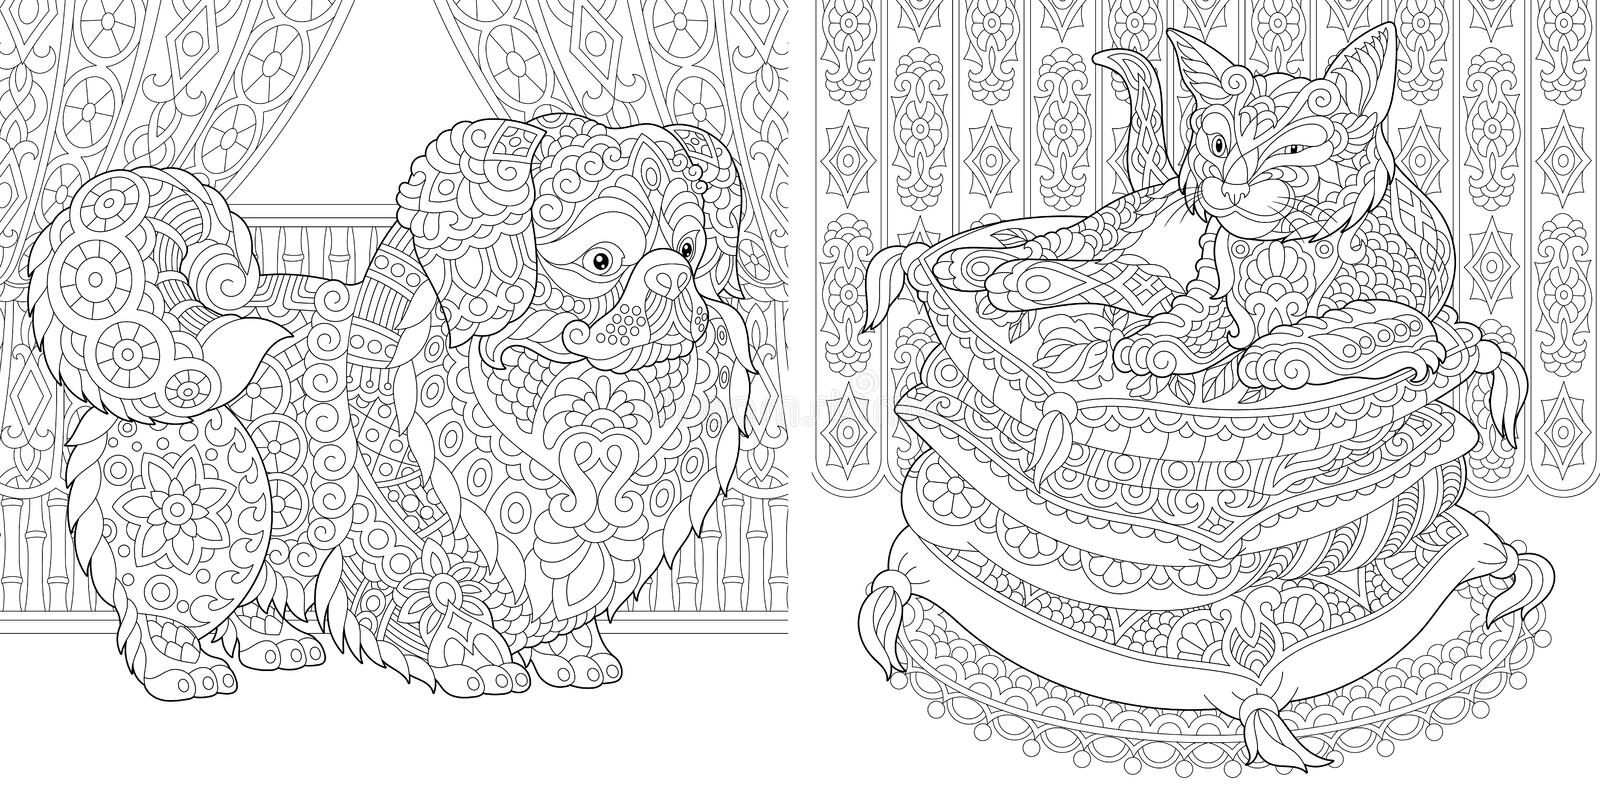 zentangle cat pekingese dog coloring pages pillows japanese chin adult book idea antistress freehand sketch drawing